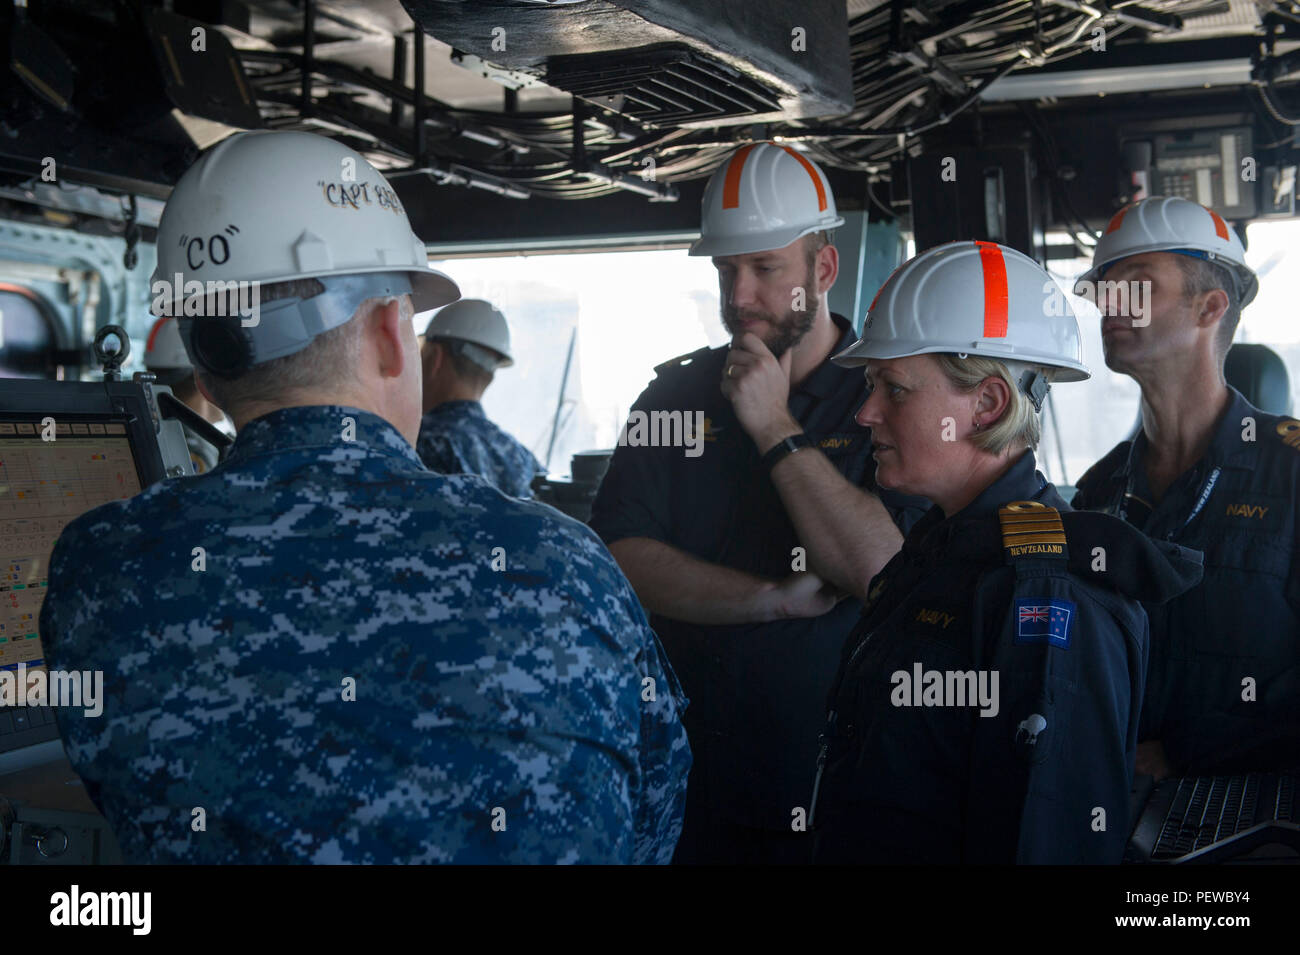 160204-N-VR008-051 SAN DIEGO (Feb. 4, 2016) – Capt. Michael W. Baze, commanding officer of the amphibious assault ship USS America (LHA 6), gives New Zealand Royal Navy officers a tour of the ship's bridge. America is currently undergoing a post-shakedown availability (PSA) in which the ship's crew and assigned contractors make improvements to the ship's design. (U.S. Navy photo by Mass Communication Specialist 3rd Class Kyle Goldberg/Released) - Stock Image